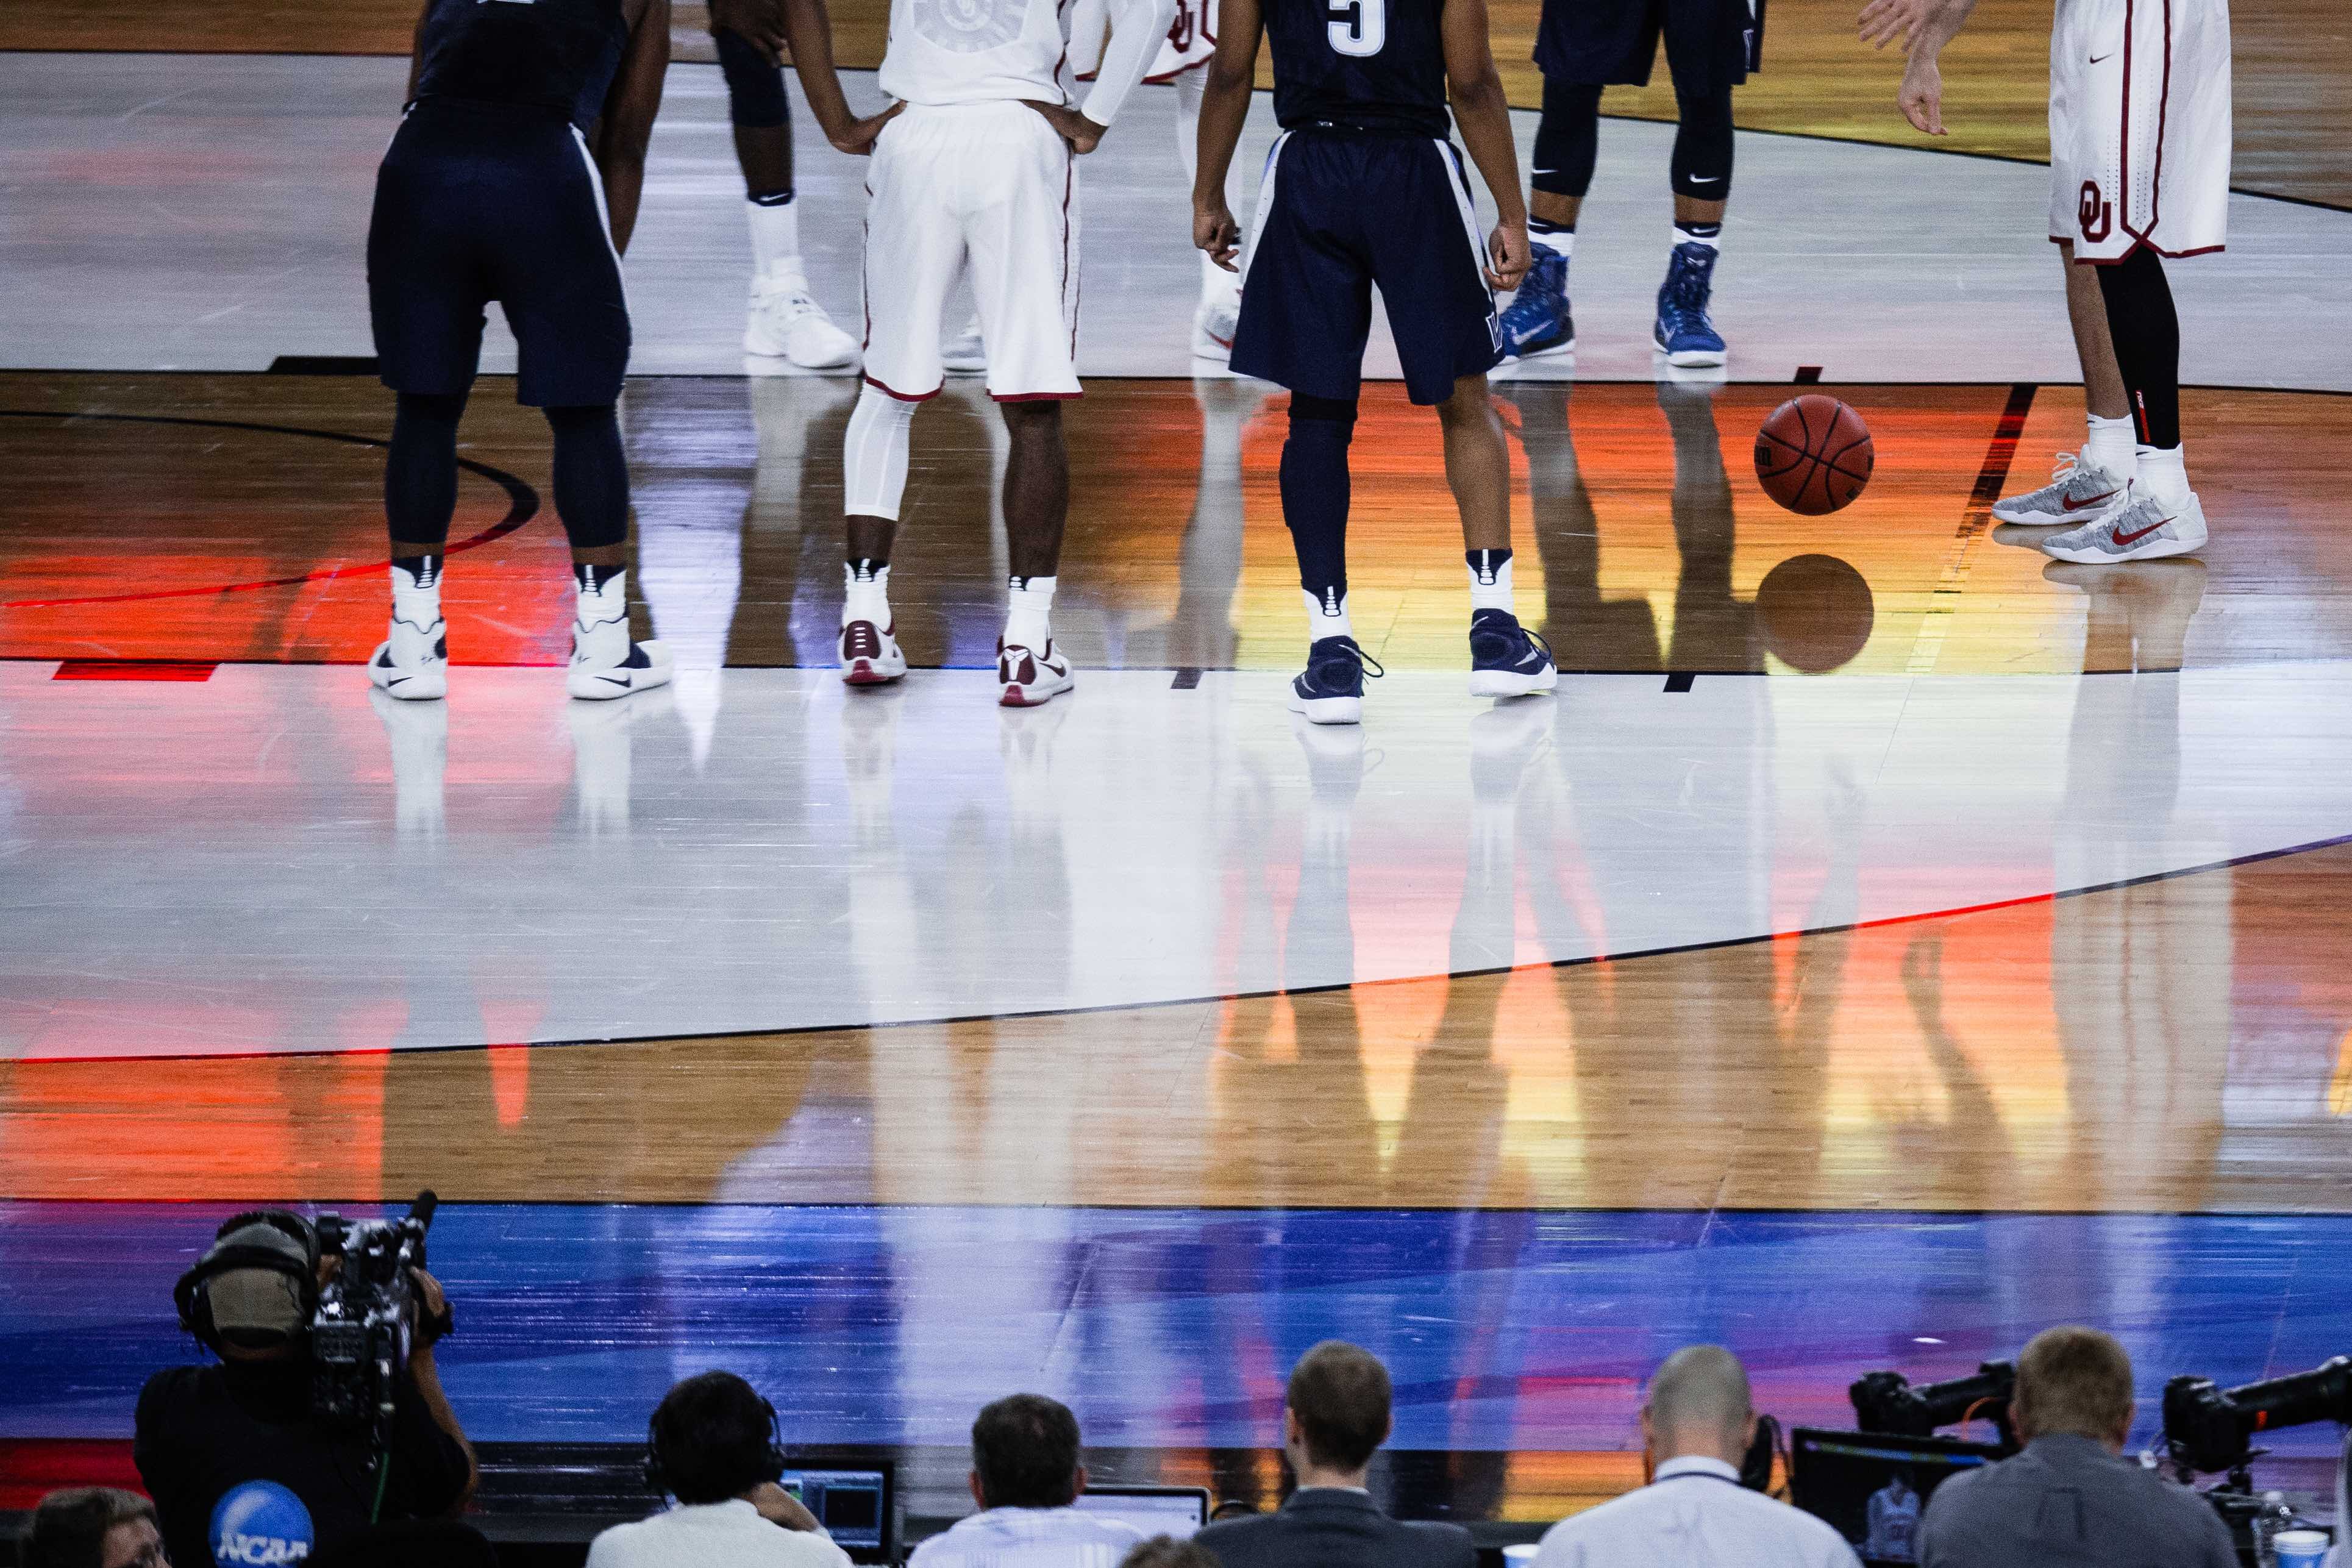 Villanova takes on Oklahoma during the NCAA Final Four at NRG Stadium in Houston, TX on April 2, 2016. Photo by Sam Maller